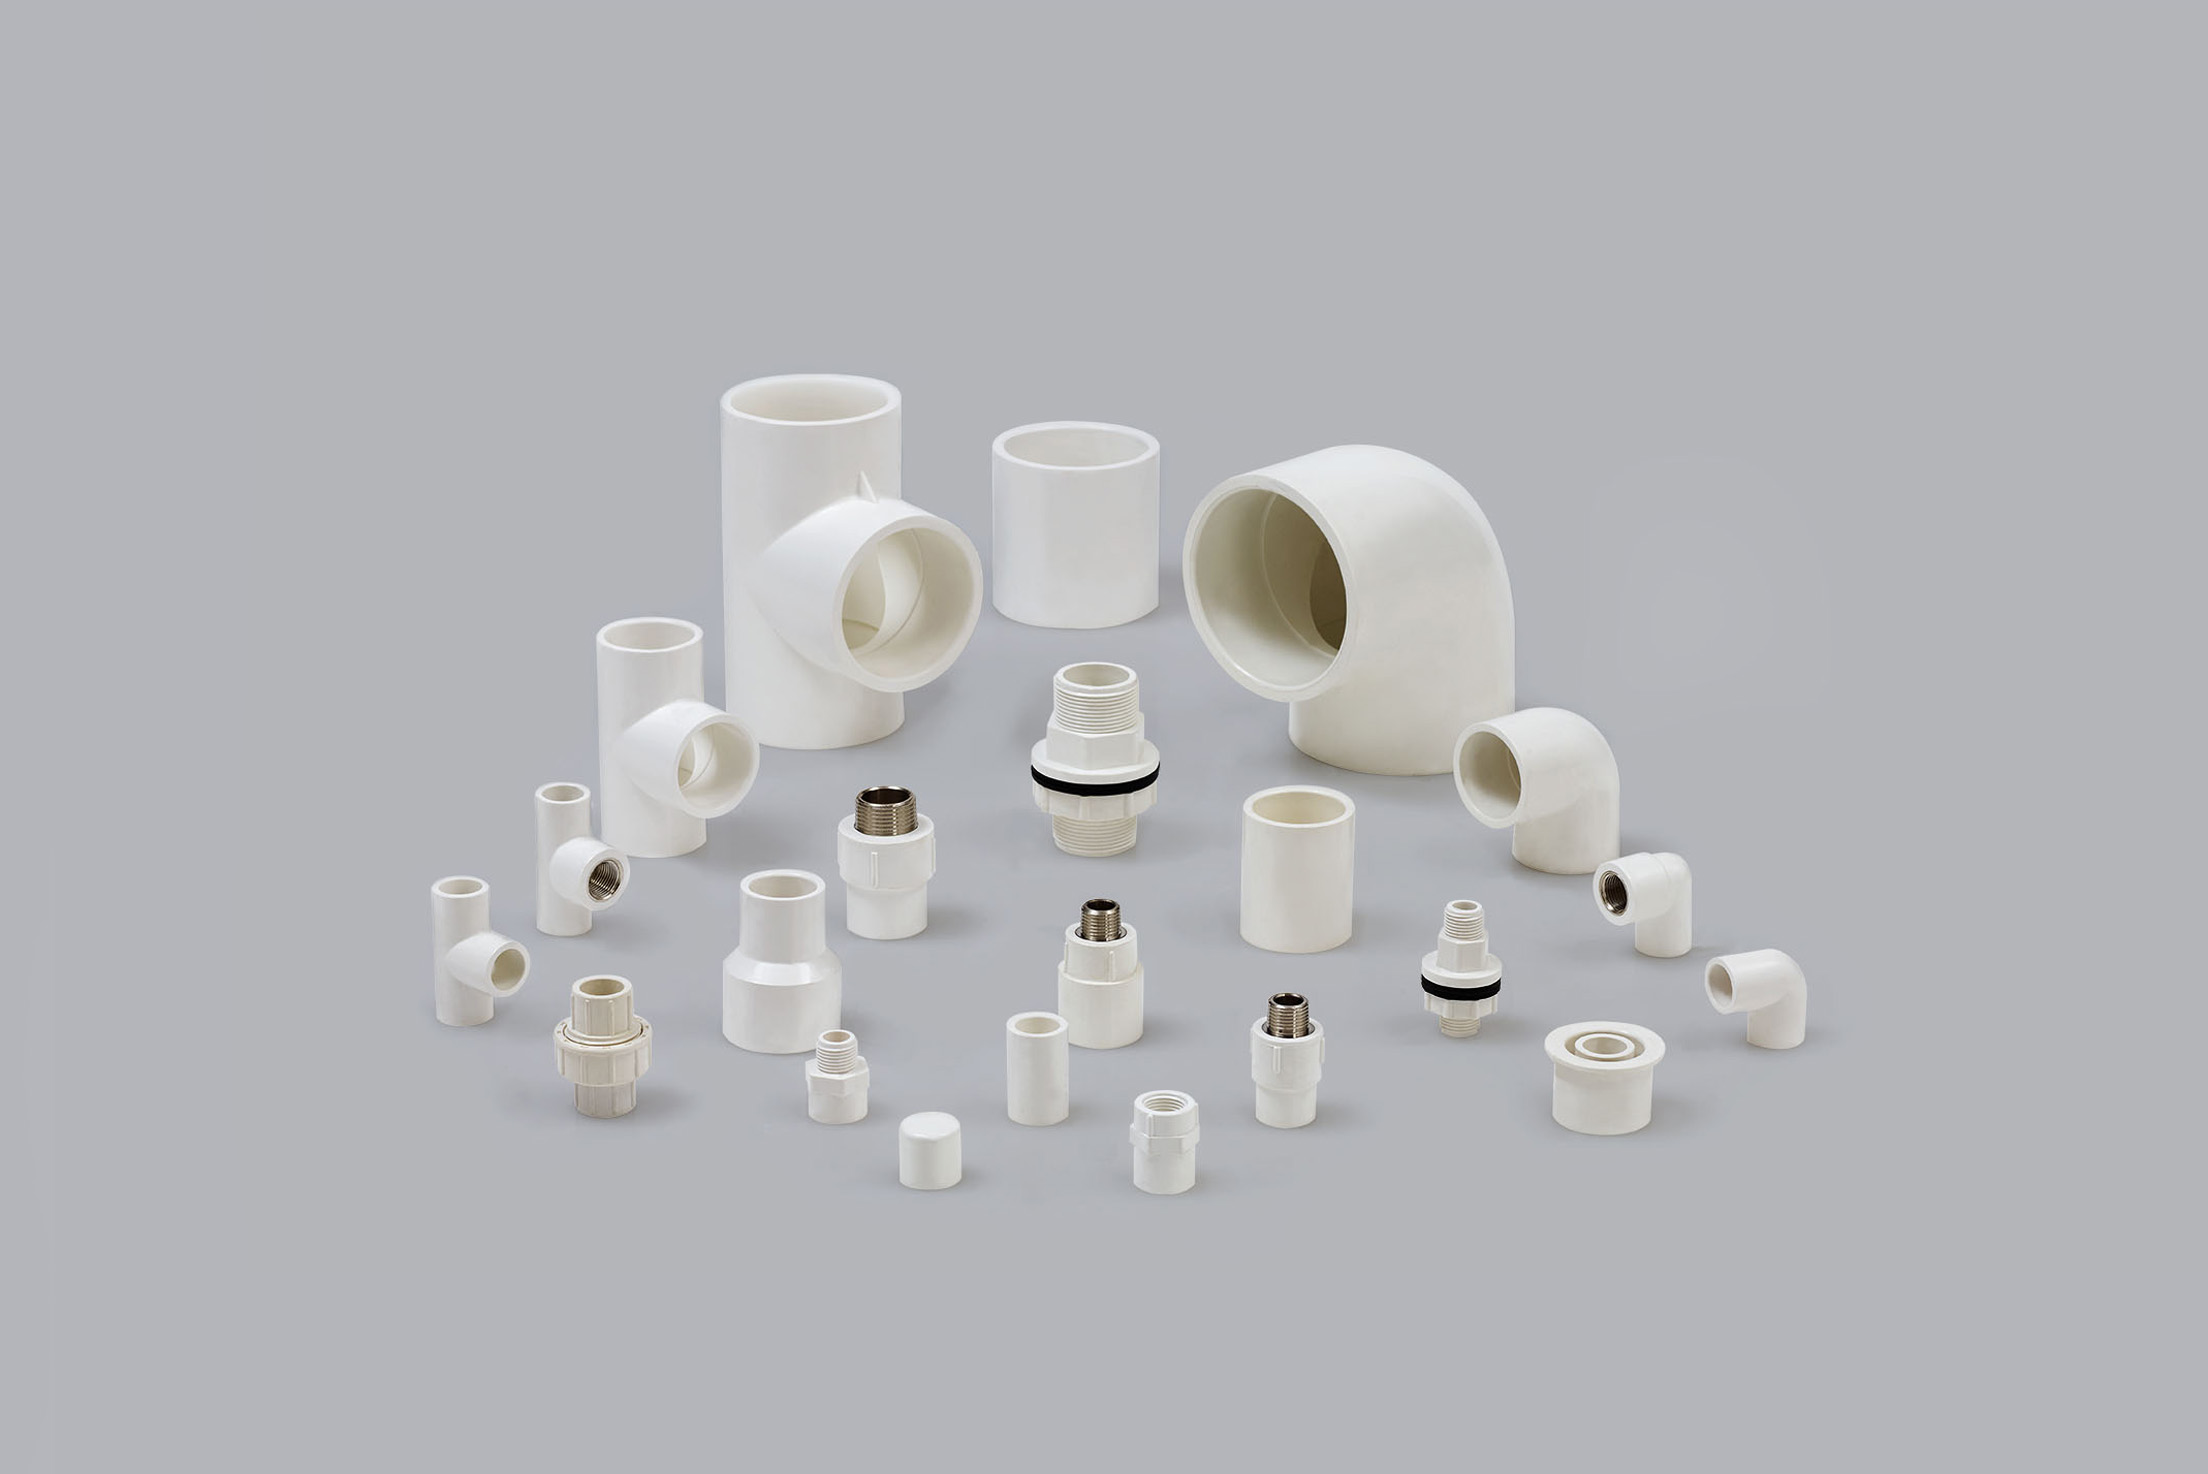 ASTM-Fittings-Web.jpg